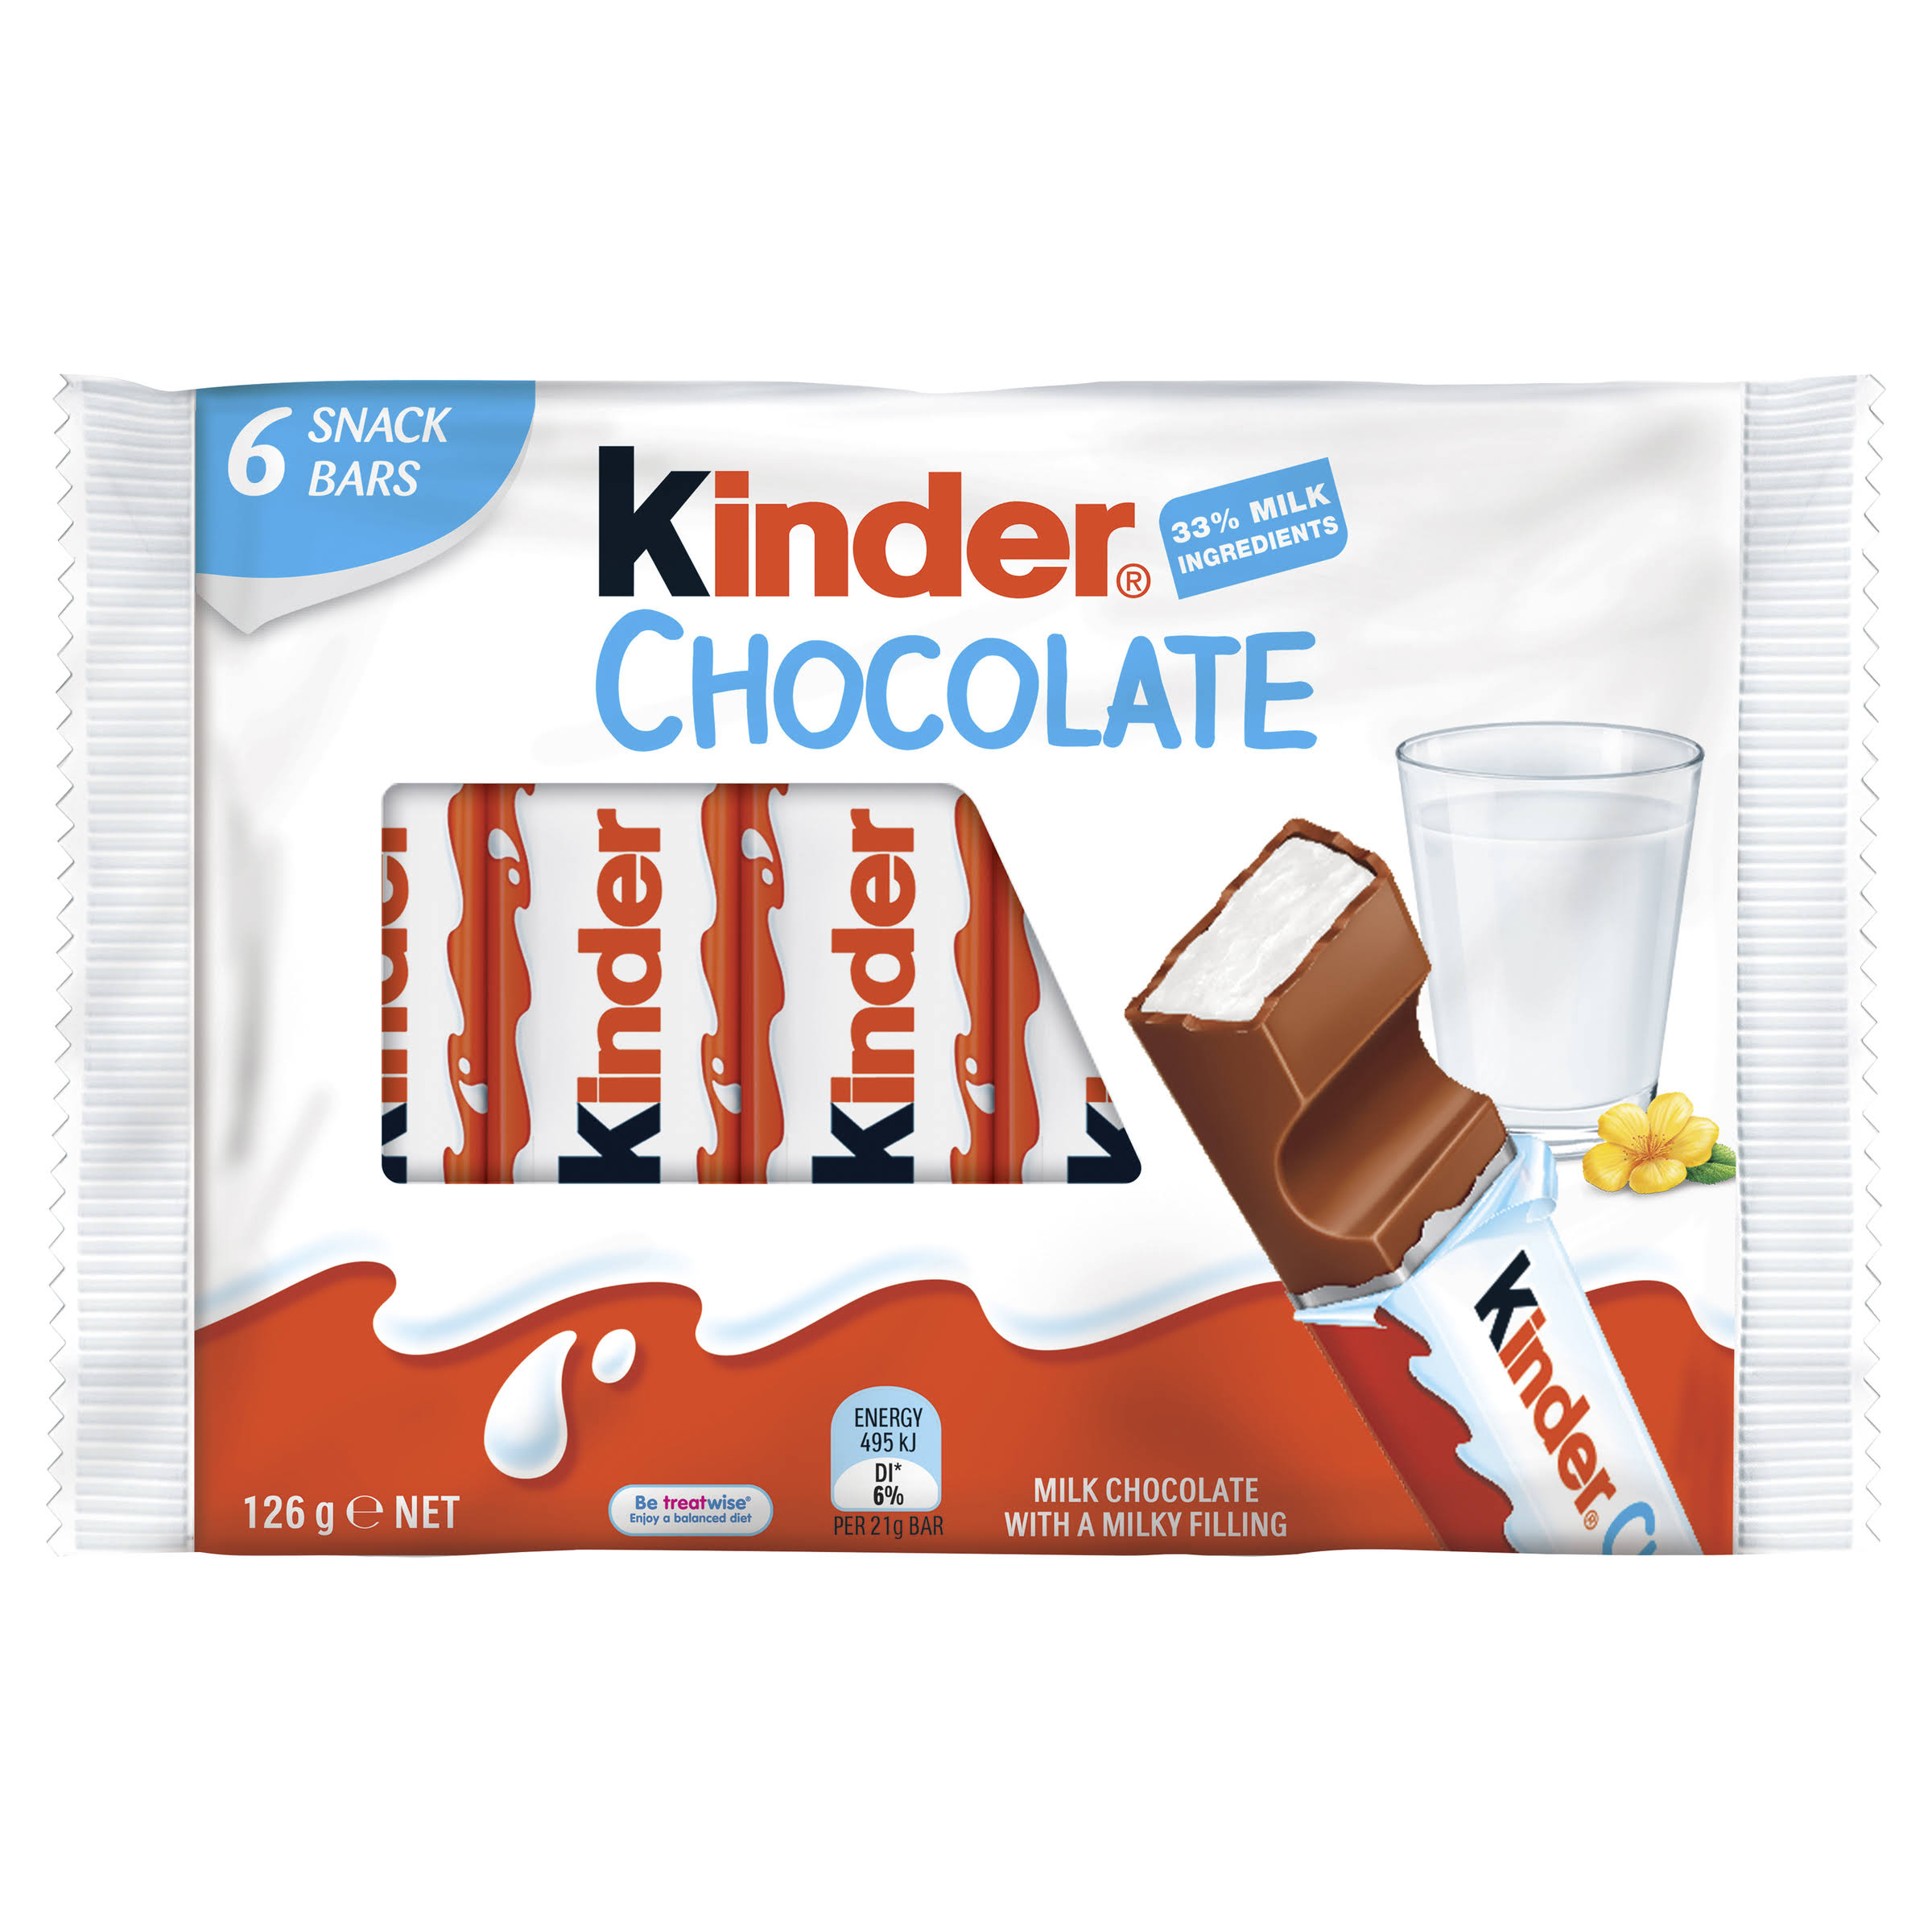 Kinder Chocolate Bars - 21g